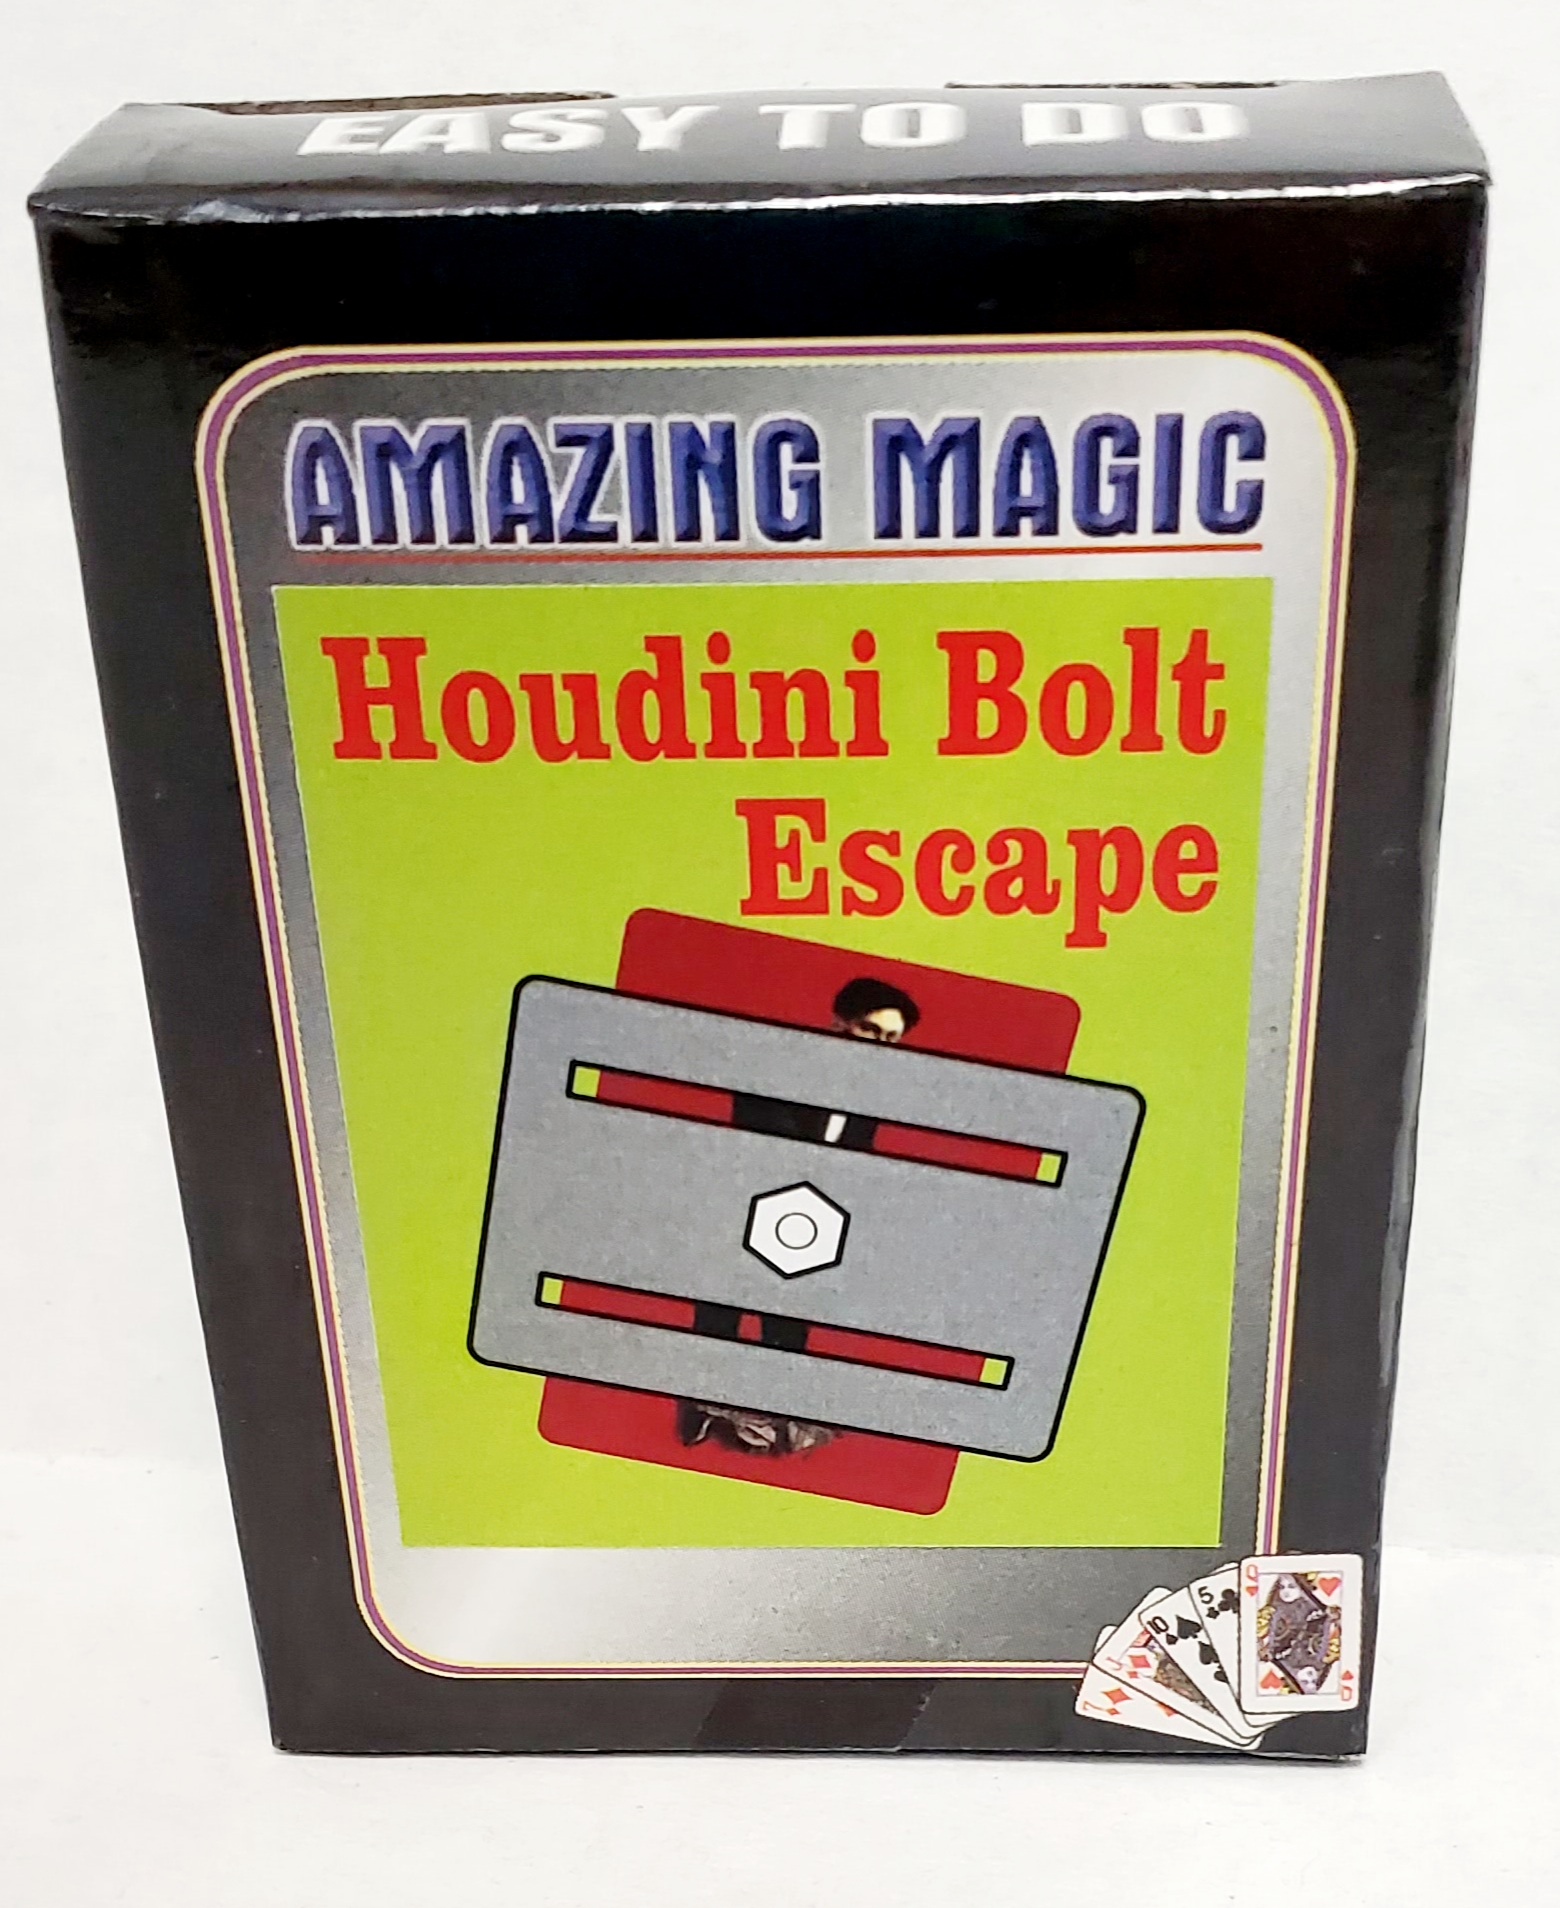 Houdini Bolt Escape (FT)